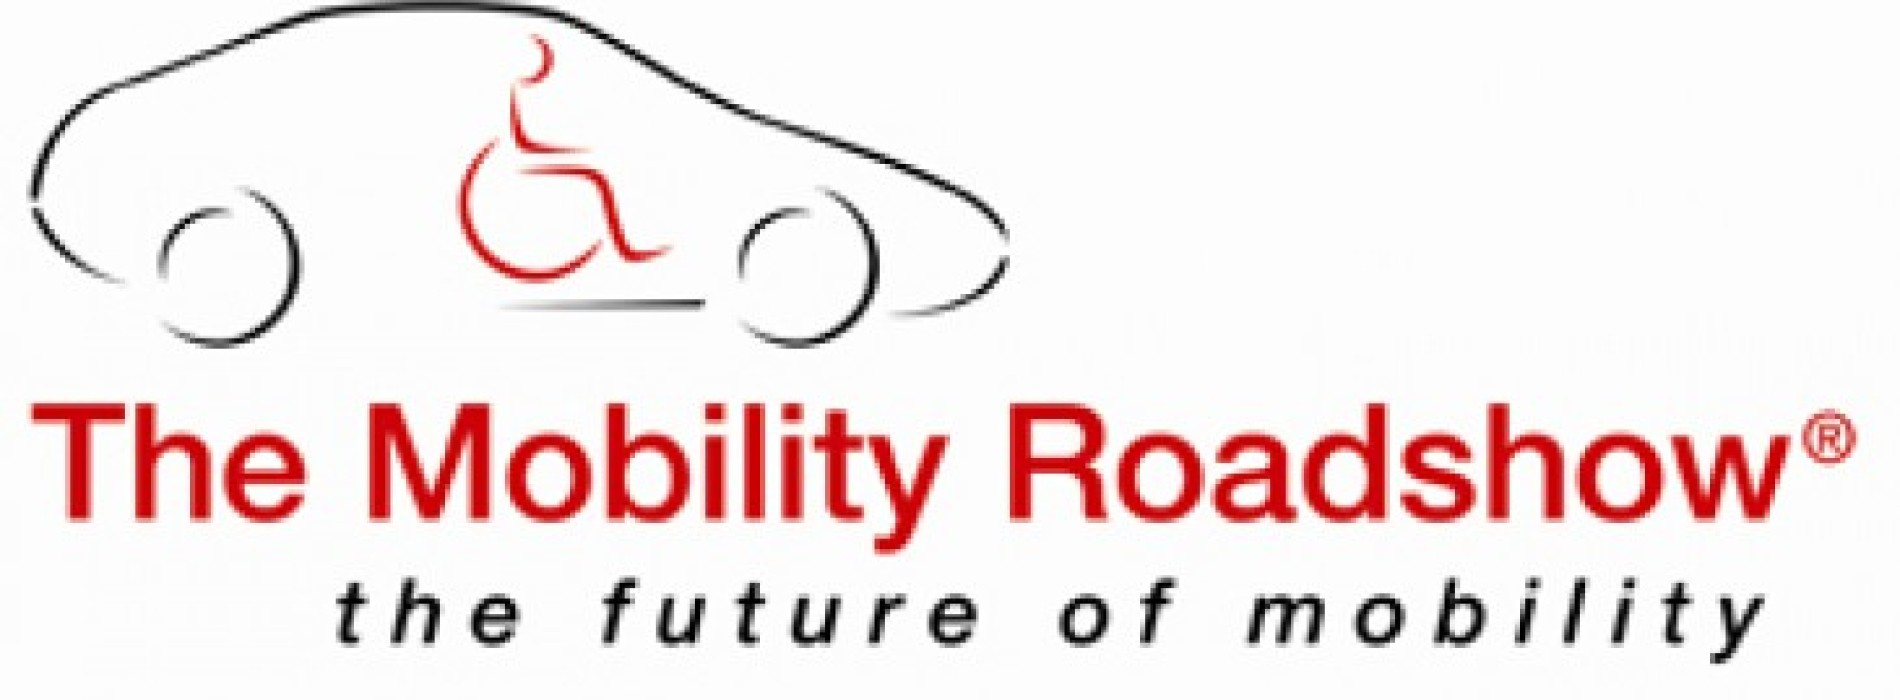 Mobility Roadshow: what caught our eye!